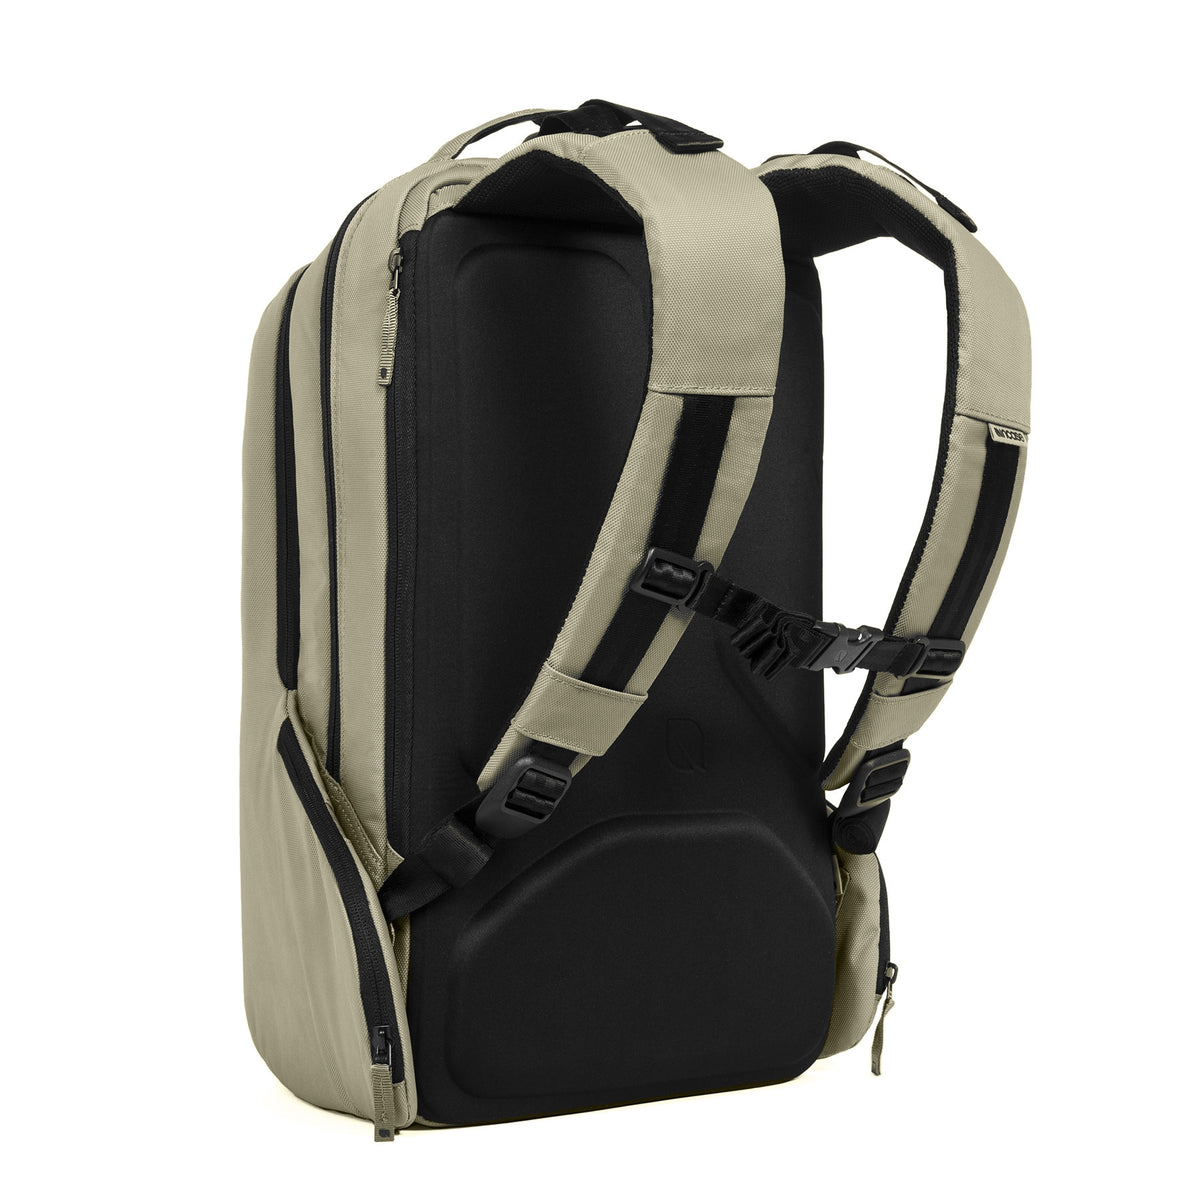 Incase: Icon Backpack - Moss Green / Black (CL55556)